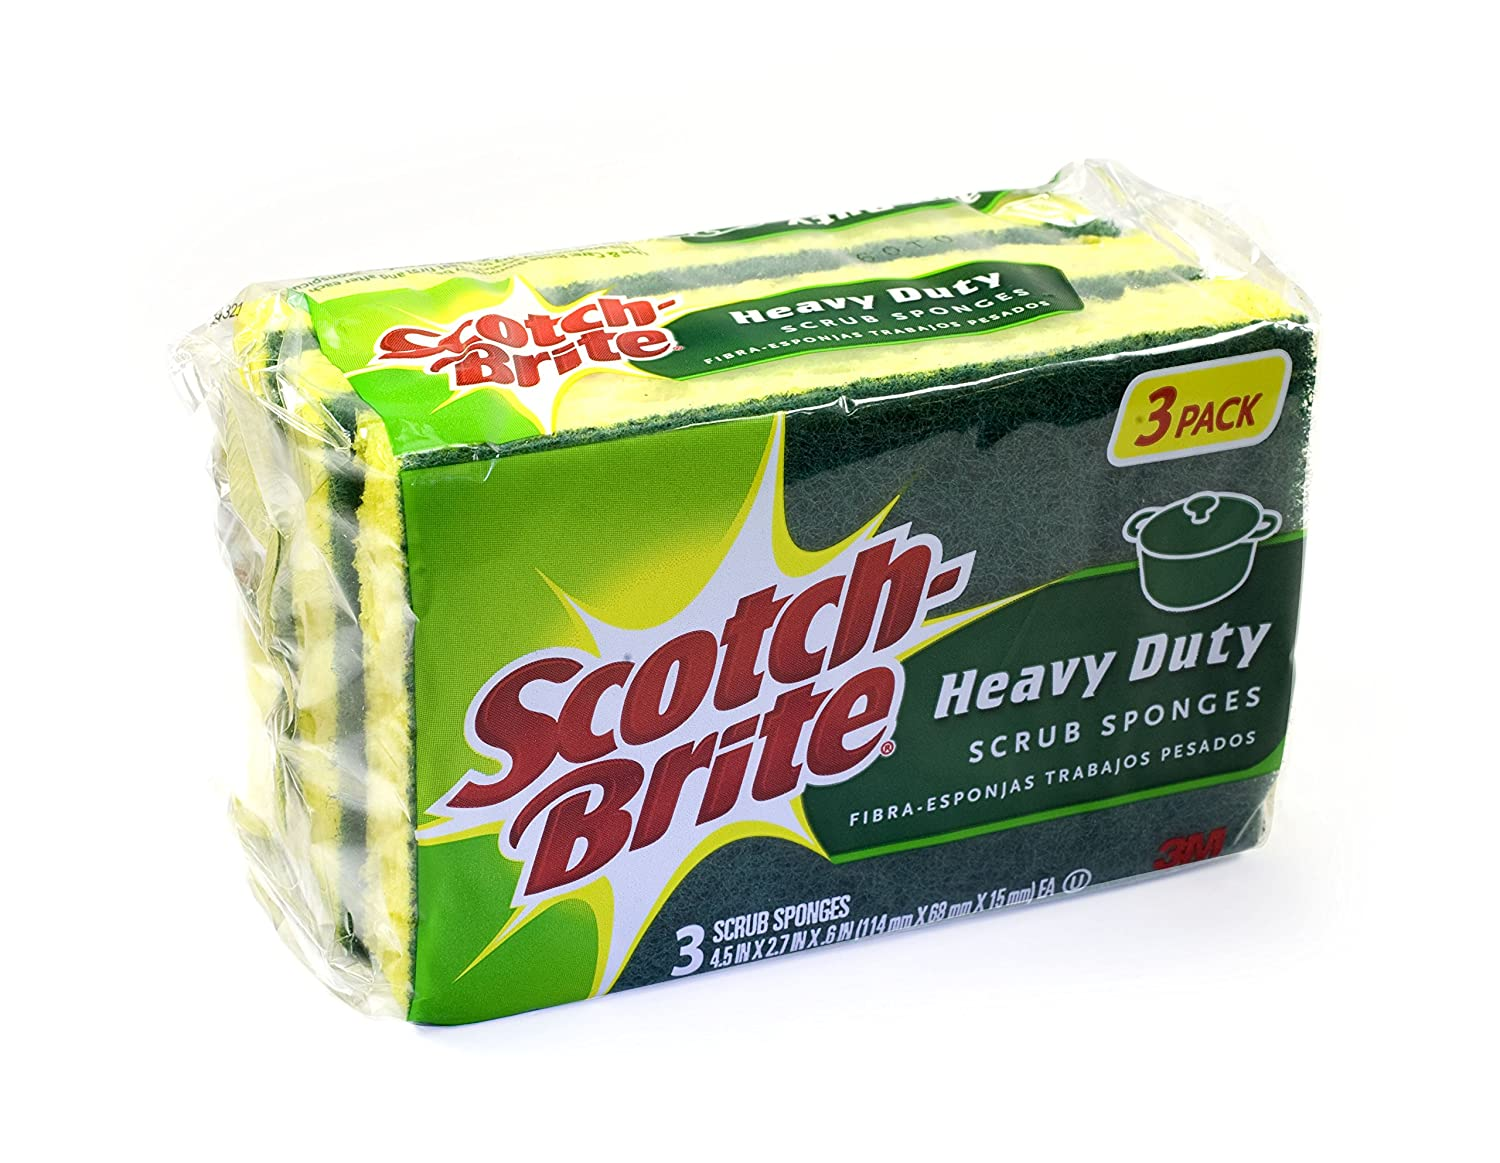 Scotch Brite MMMHD3 Heavy Duty Scrub Sponge Yellow Green 3 Per Pack